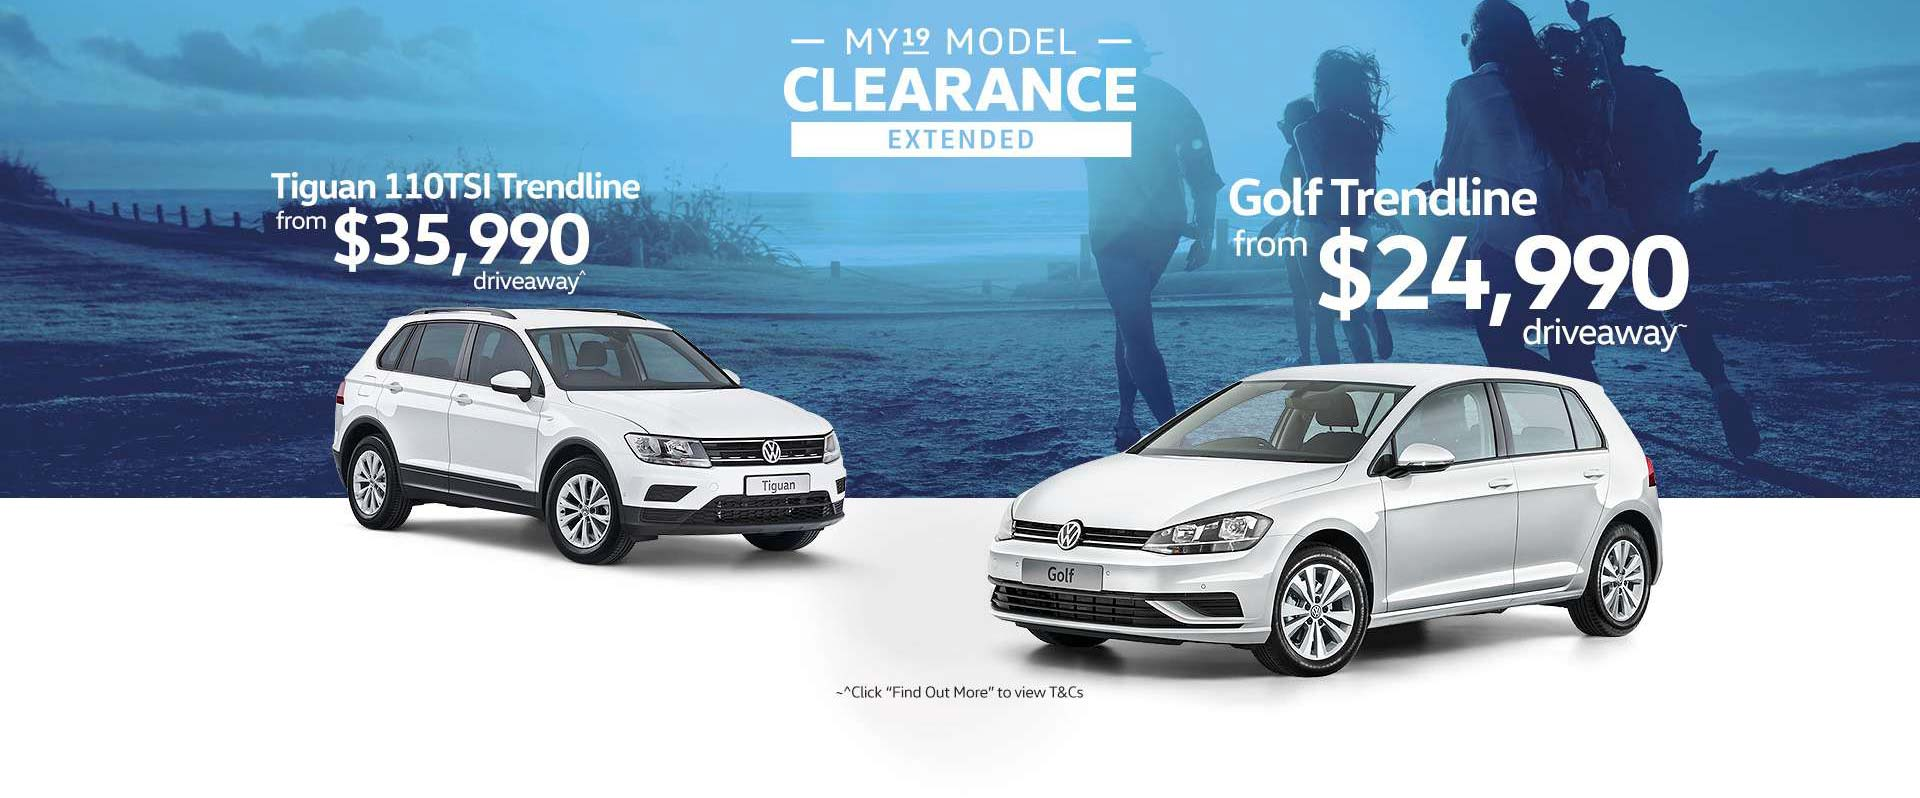 Volkswagen MY19 Model Clearance Extended